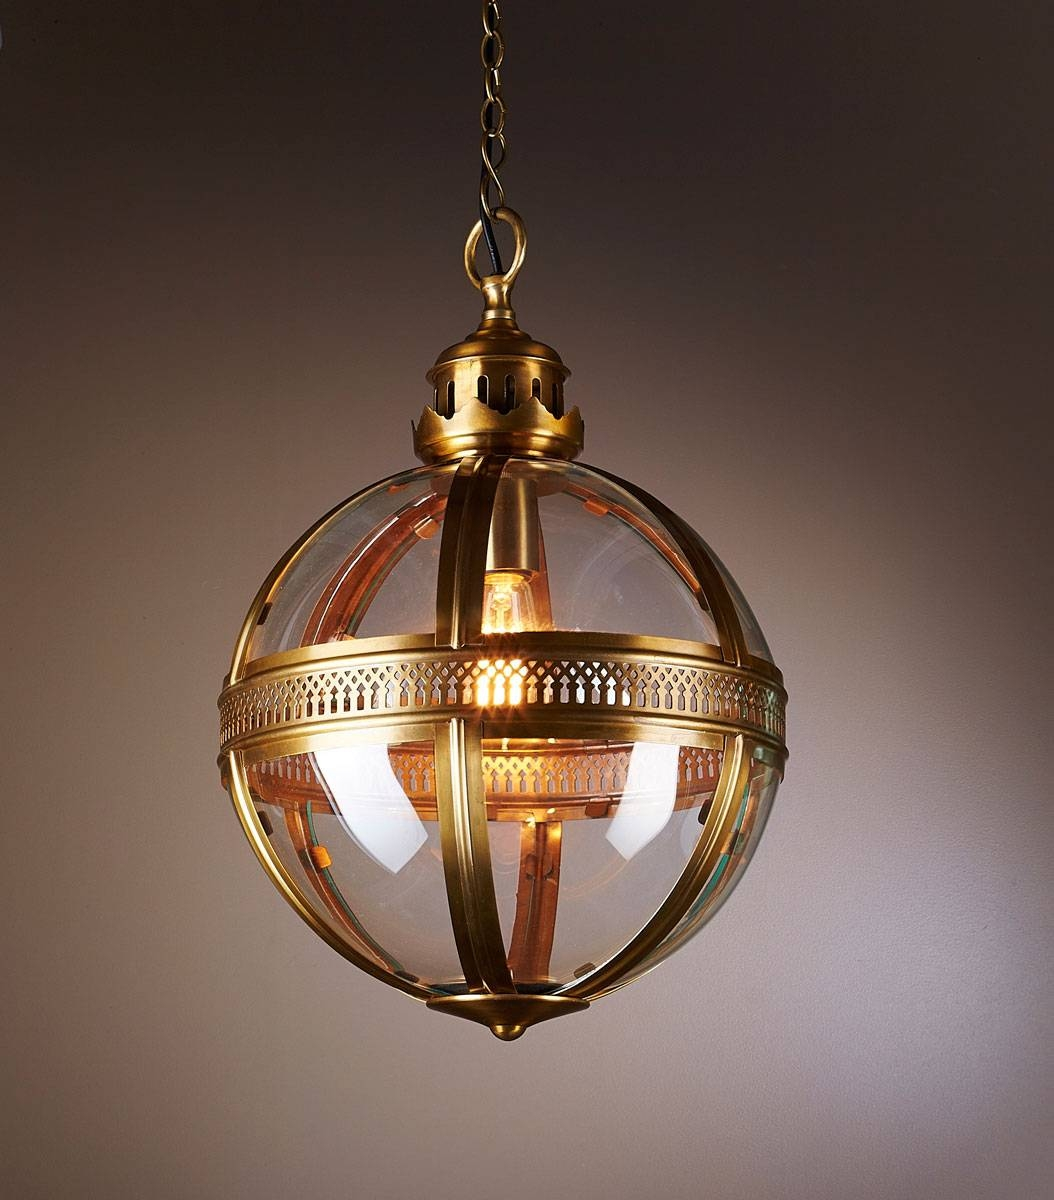 Moroccan Ceiling Lights Australia | Roselawnlutheran pertaining to Moroccan Style Pendant Ceiling Lights (Image 7 of 15)